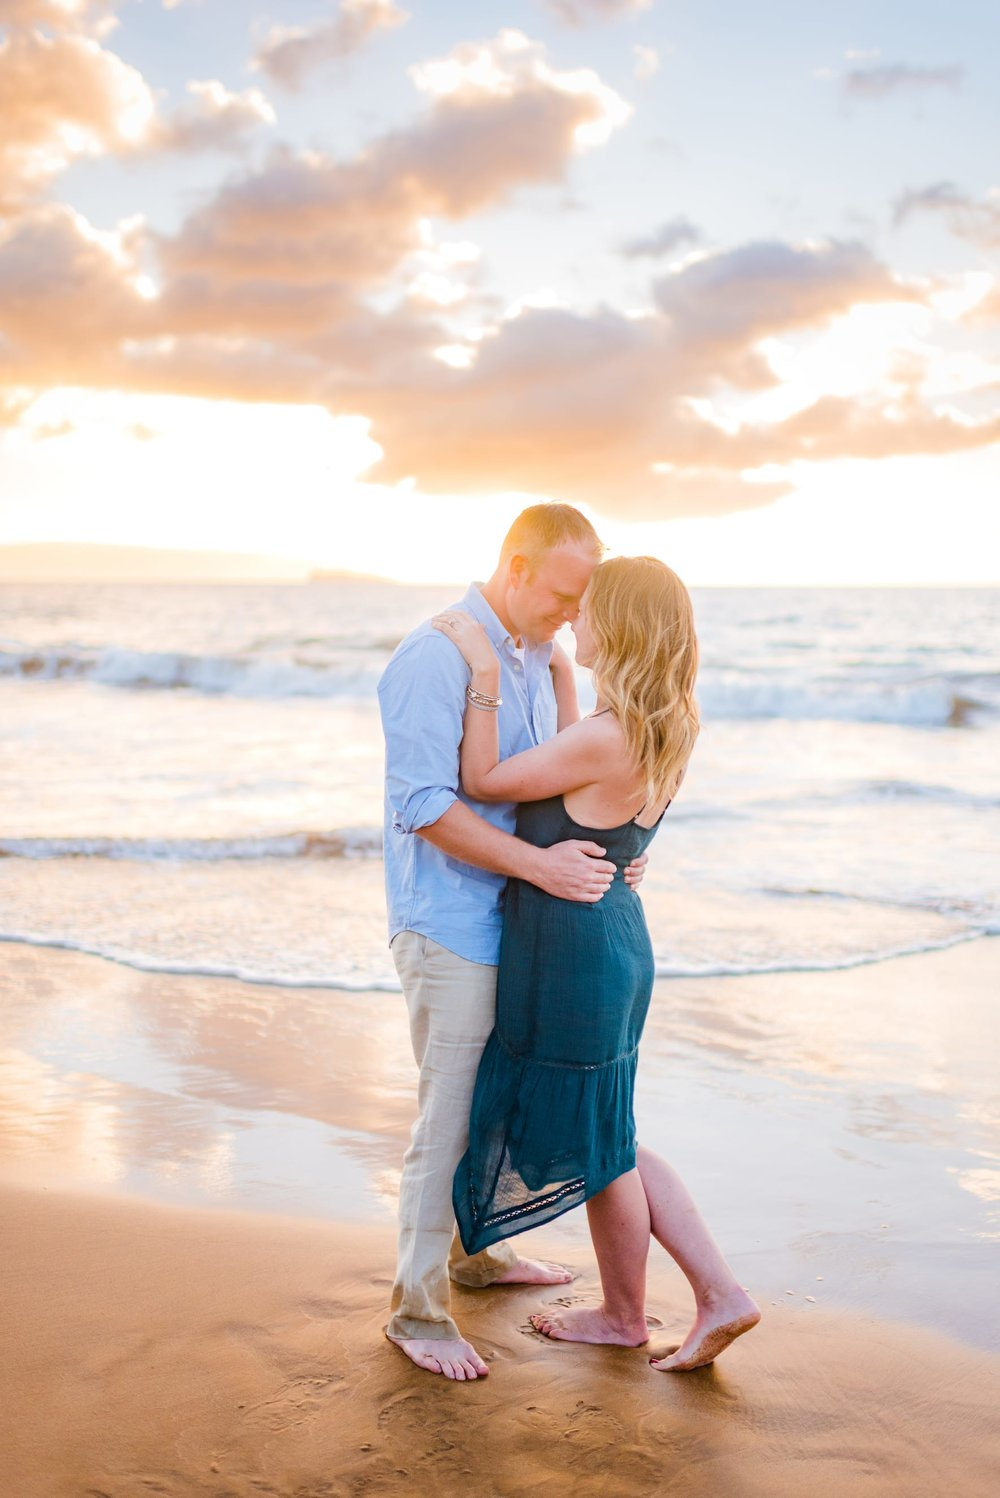 Maui-Family-Photographer-Waialea-Beach-Sunset-06.jpg